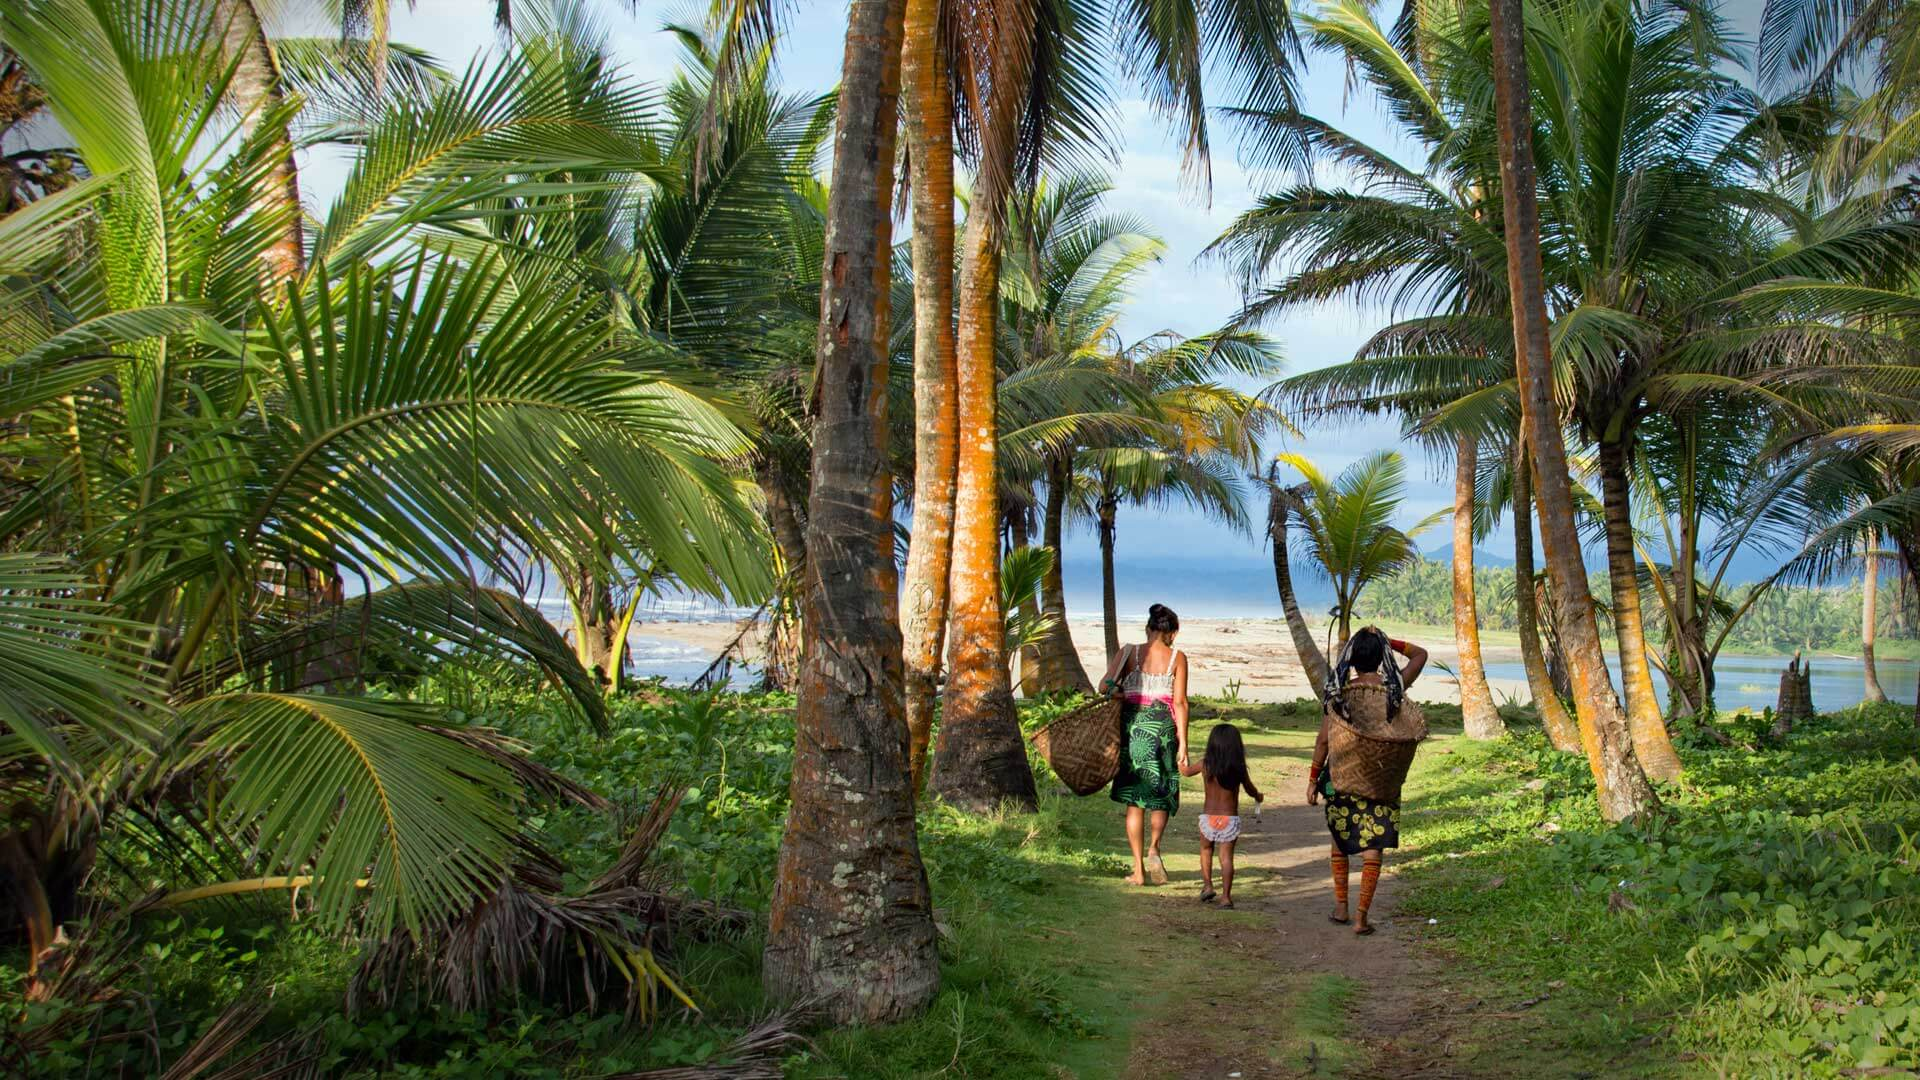 Cross the border from Panama to Colombia by boat along the San Blas islands